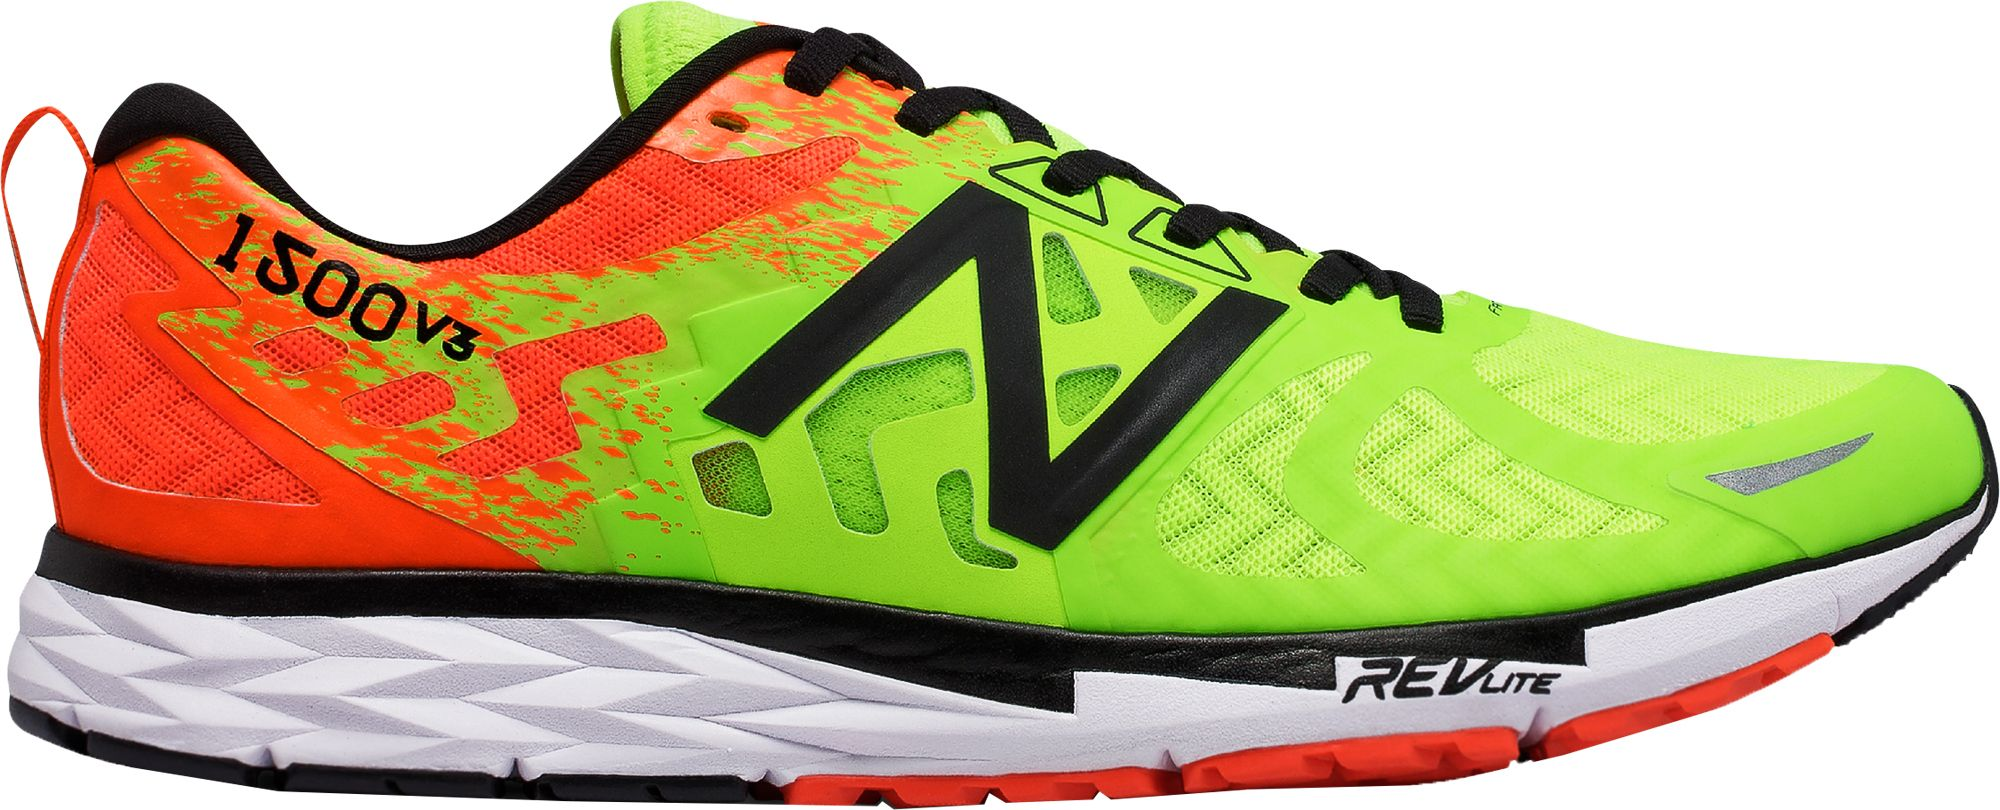 new balance running. new balance men\u0027s 1500 v3 running shoes o